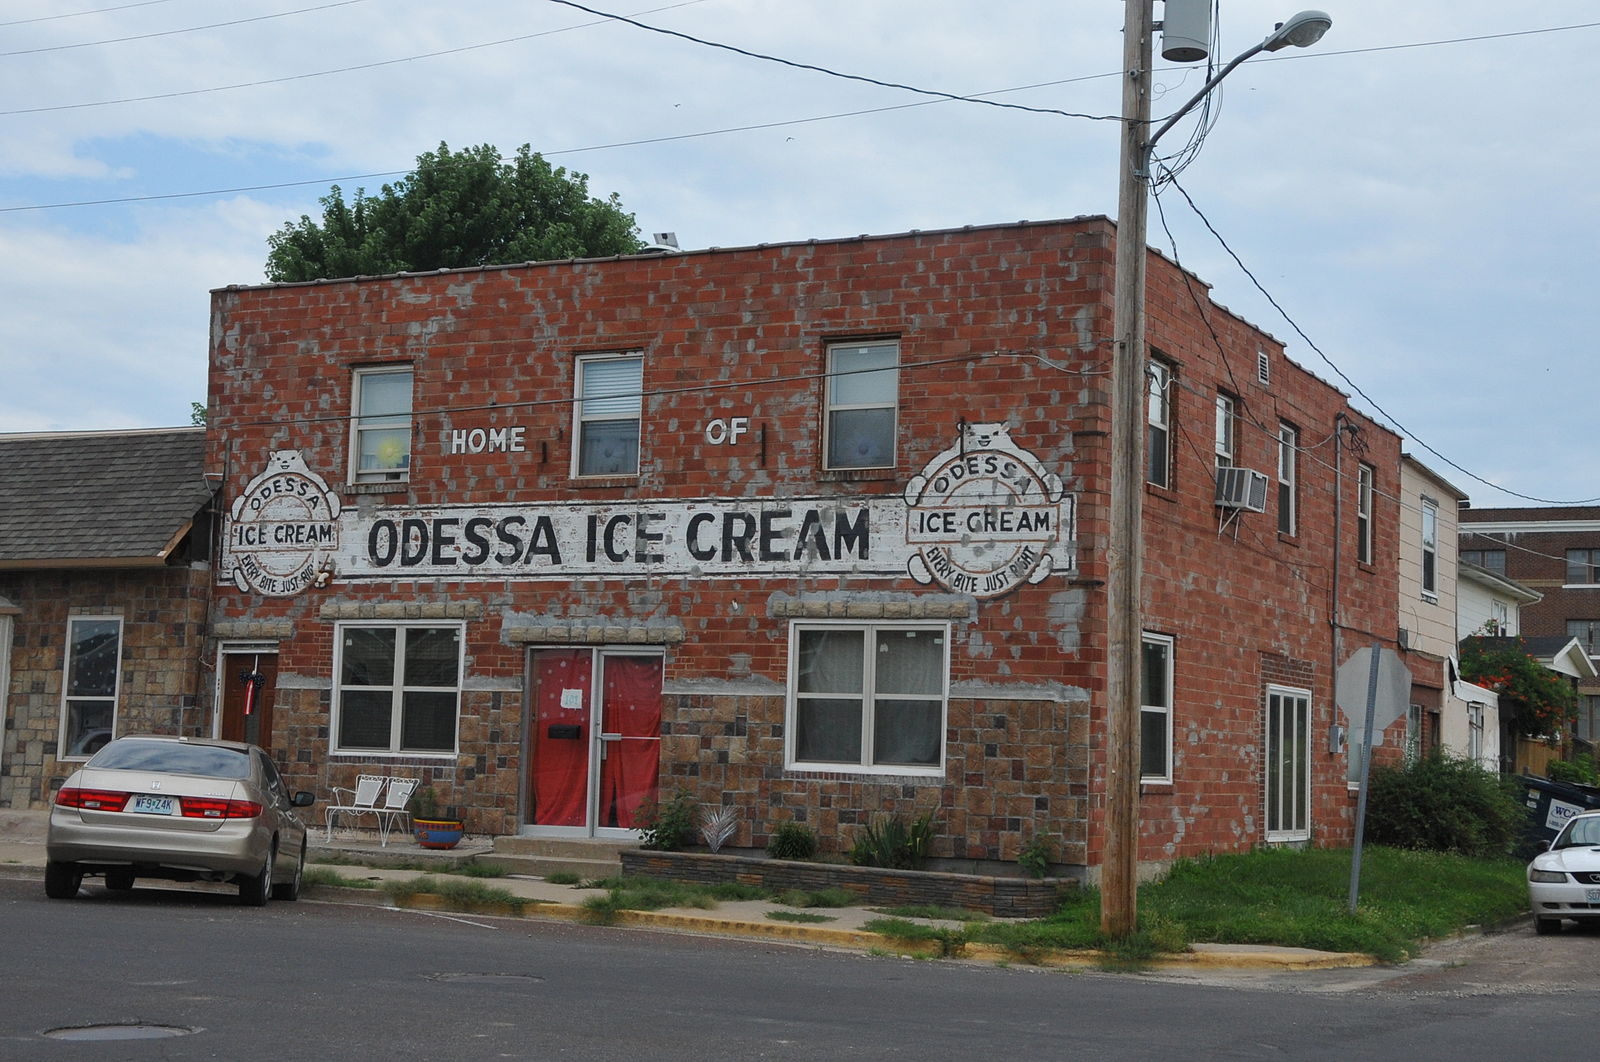 ODESSA_ICE_CREAM_COMPANY_BUILDING,_LAFAYETTE_COUNTY,_MO